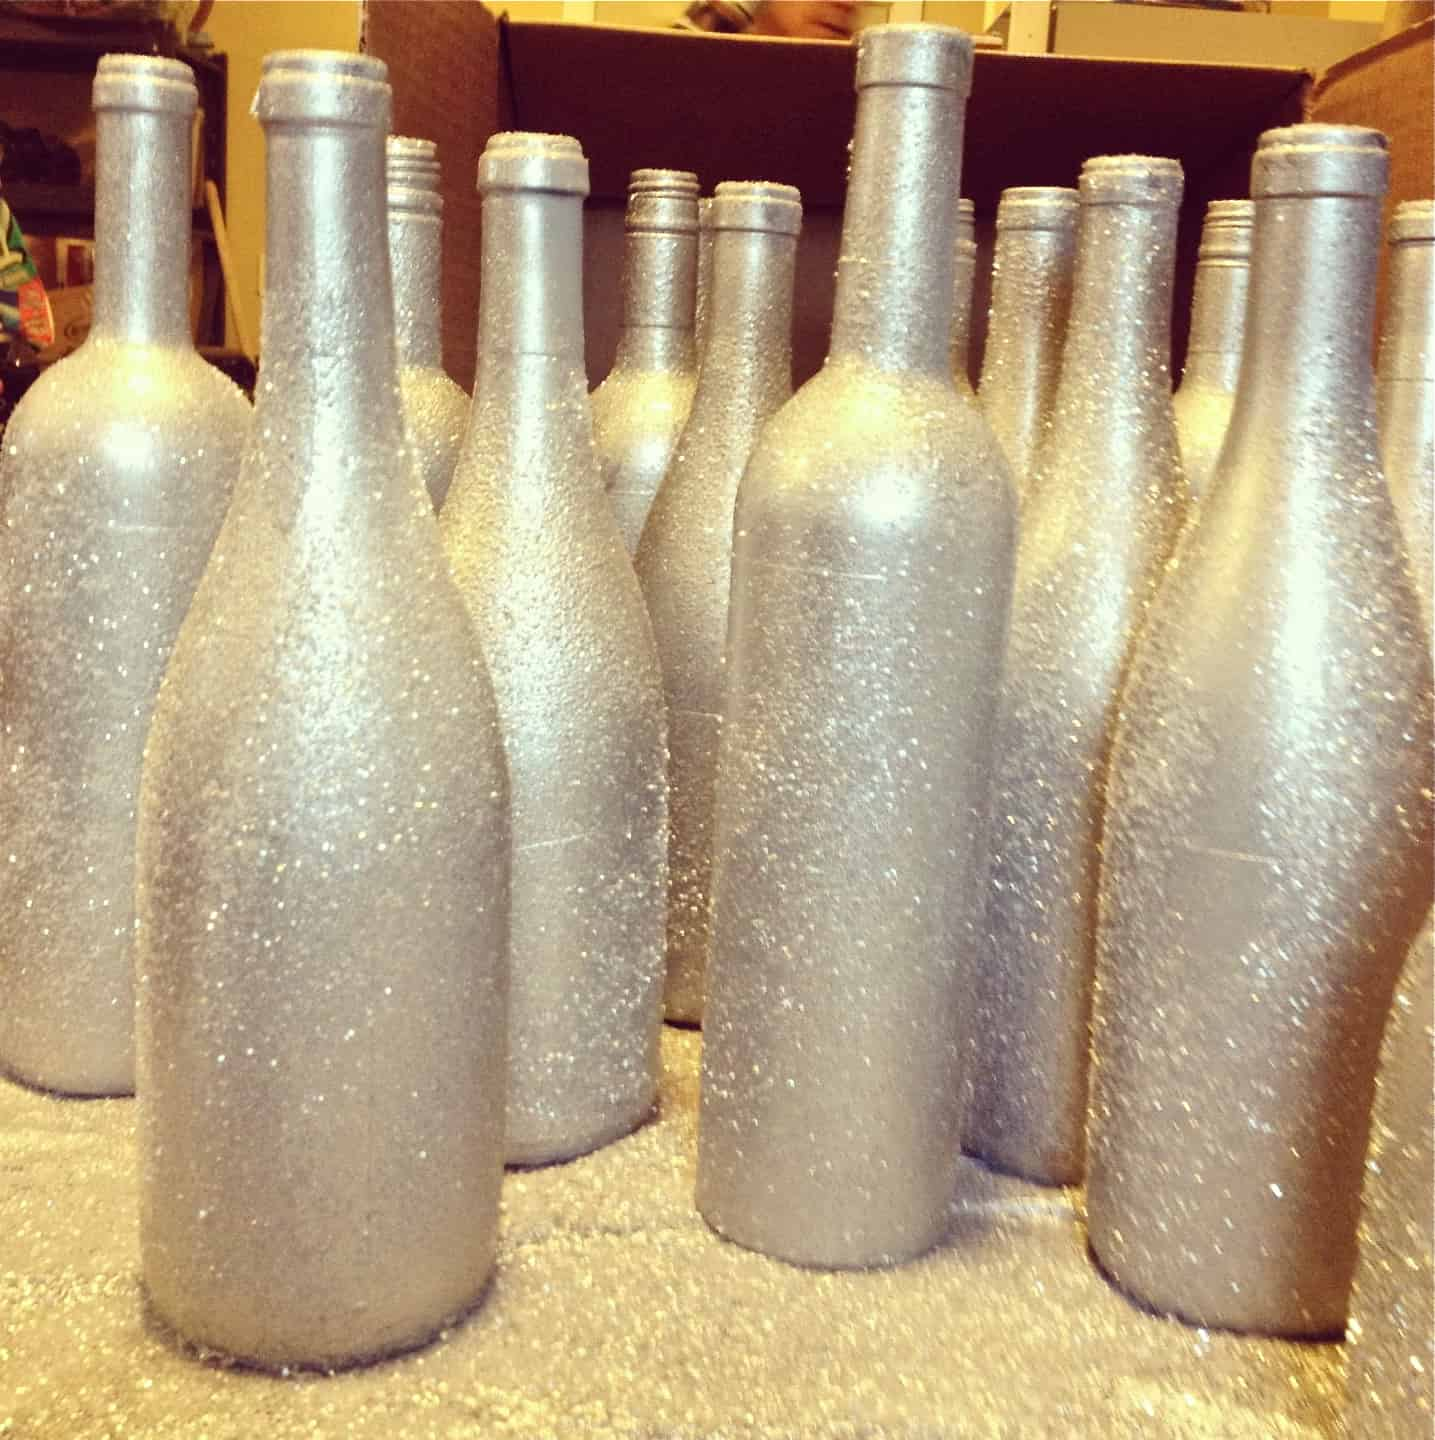 Sparkly wine bottle vases